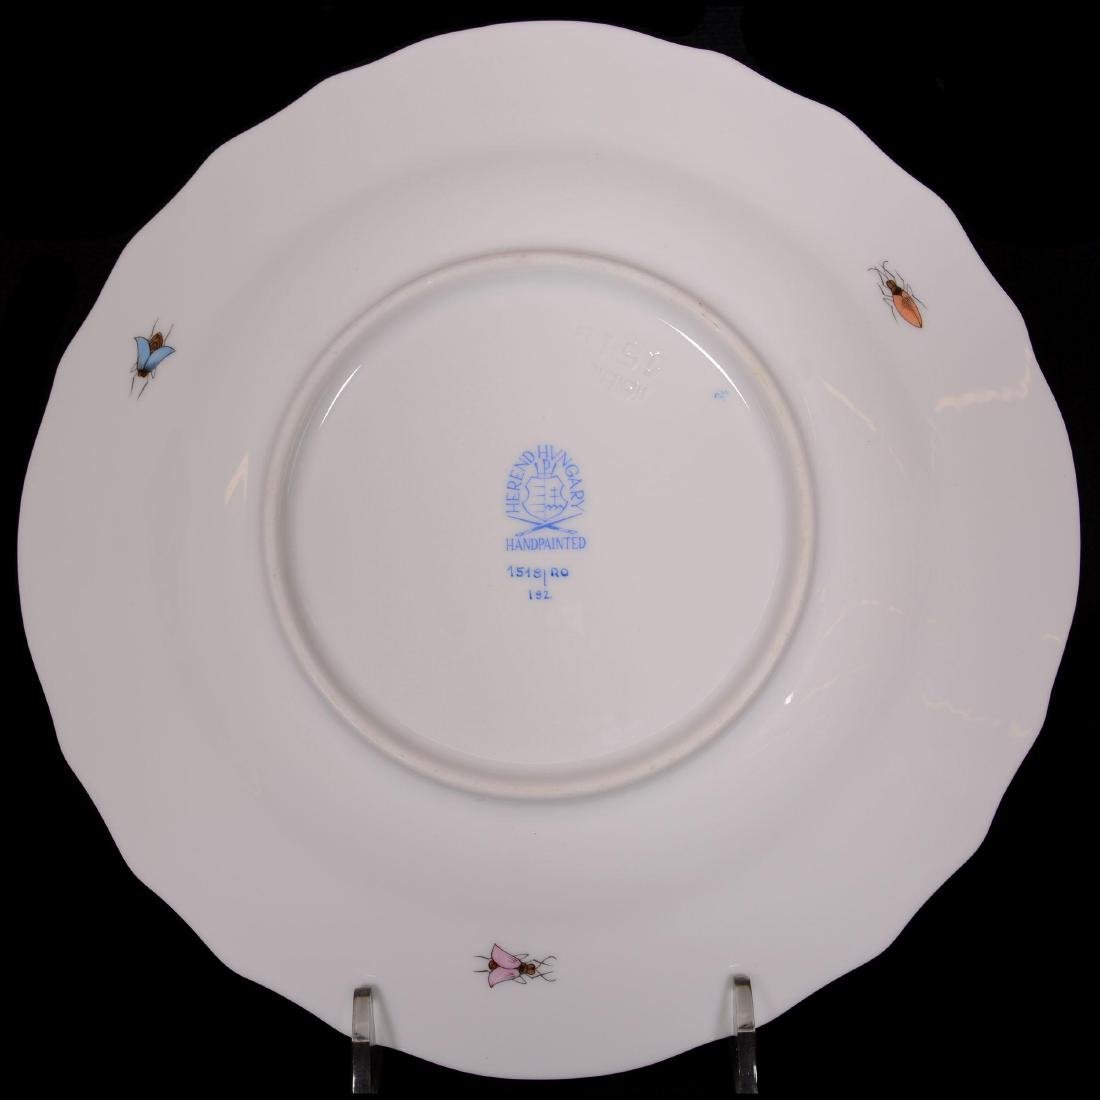 (15) Herend Hungary Porcelain Hand Painted Luncheon Pla - 2